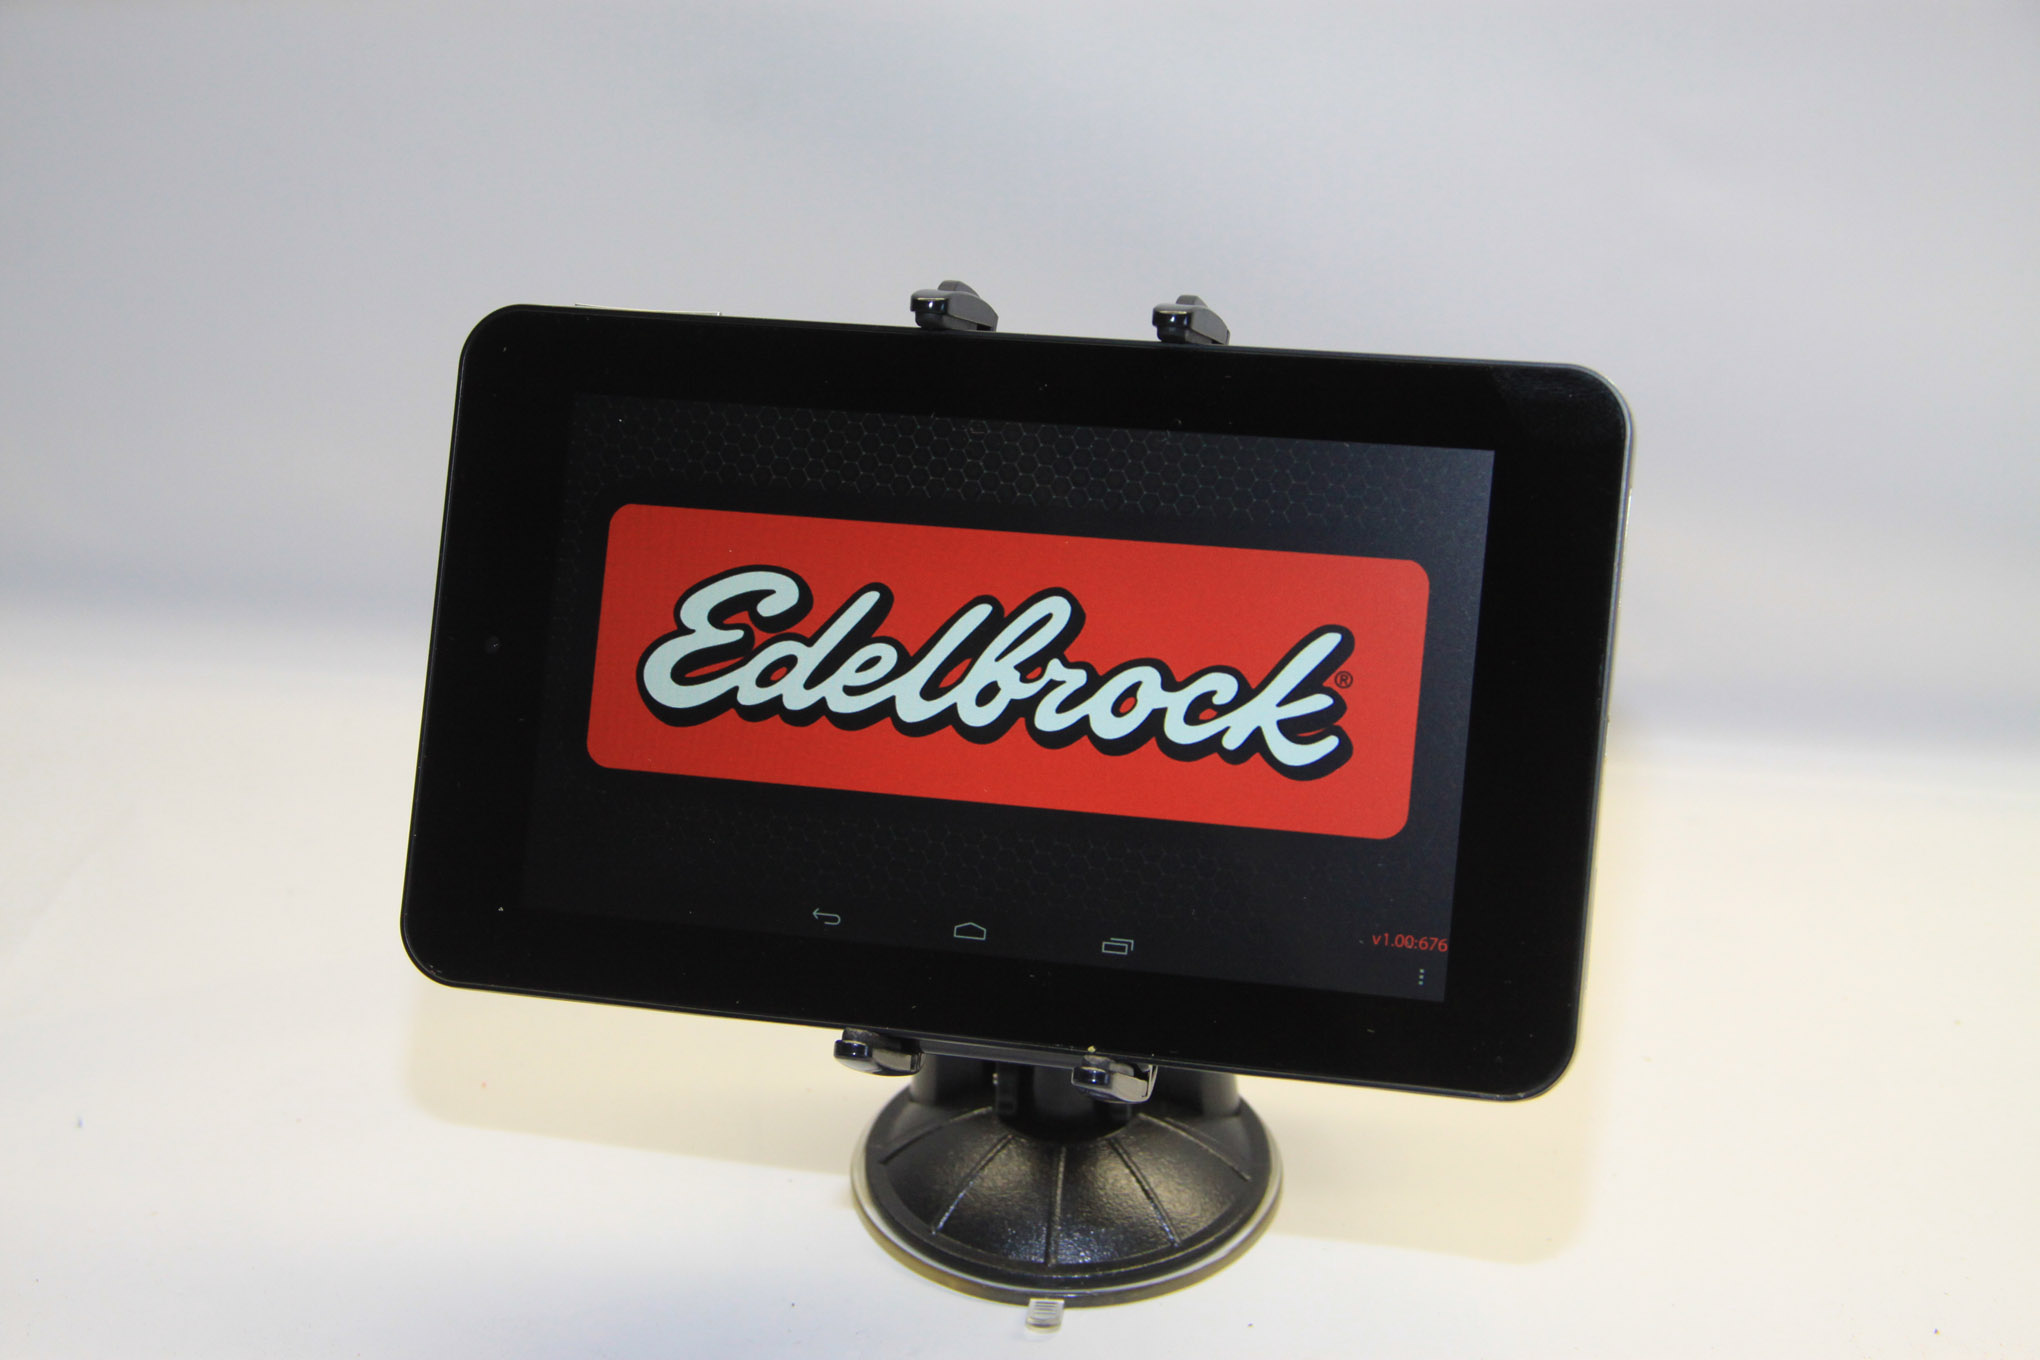 This is the 7-inch touch-screen tablet included with the E-Street System accepts downloadable applications and future upgrades from Edelbrock. There is wireless connectivity between the tablet and ECU via bluetooth.